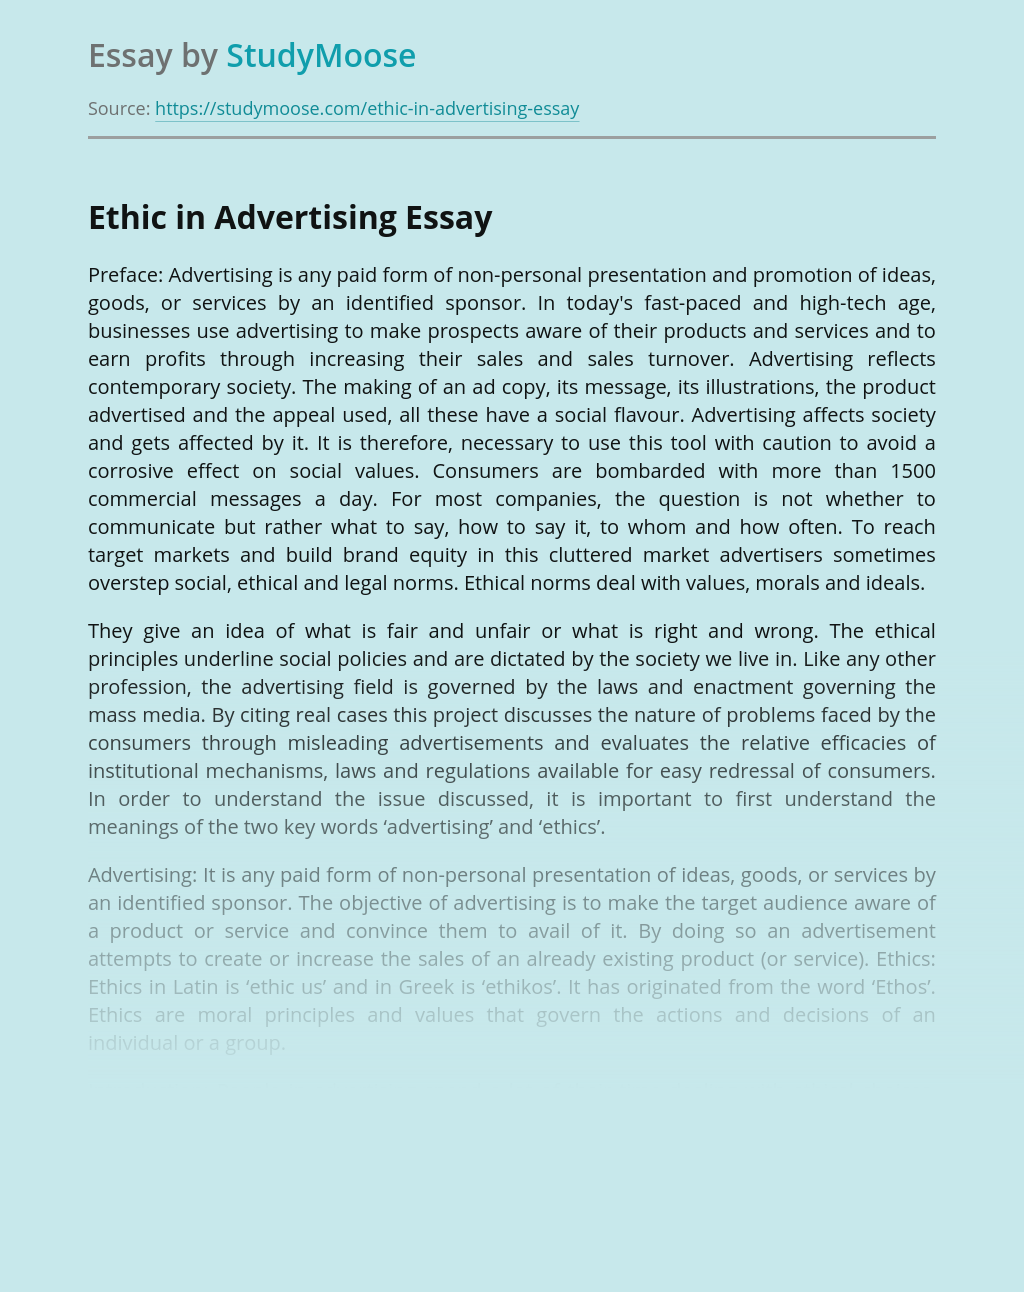 Ethic in Advertising